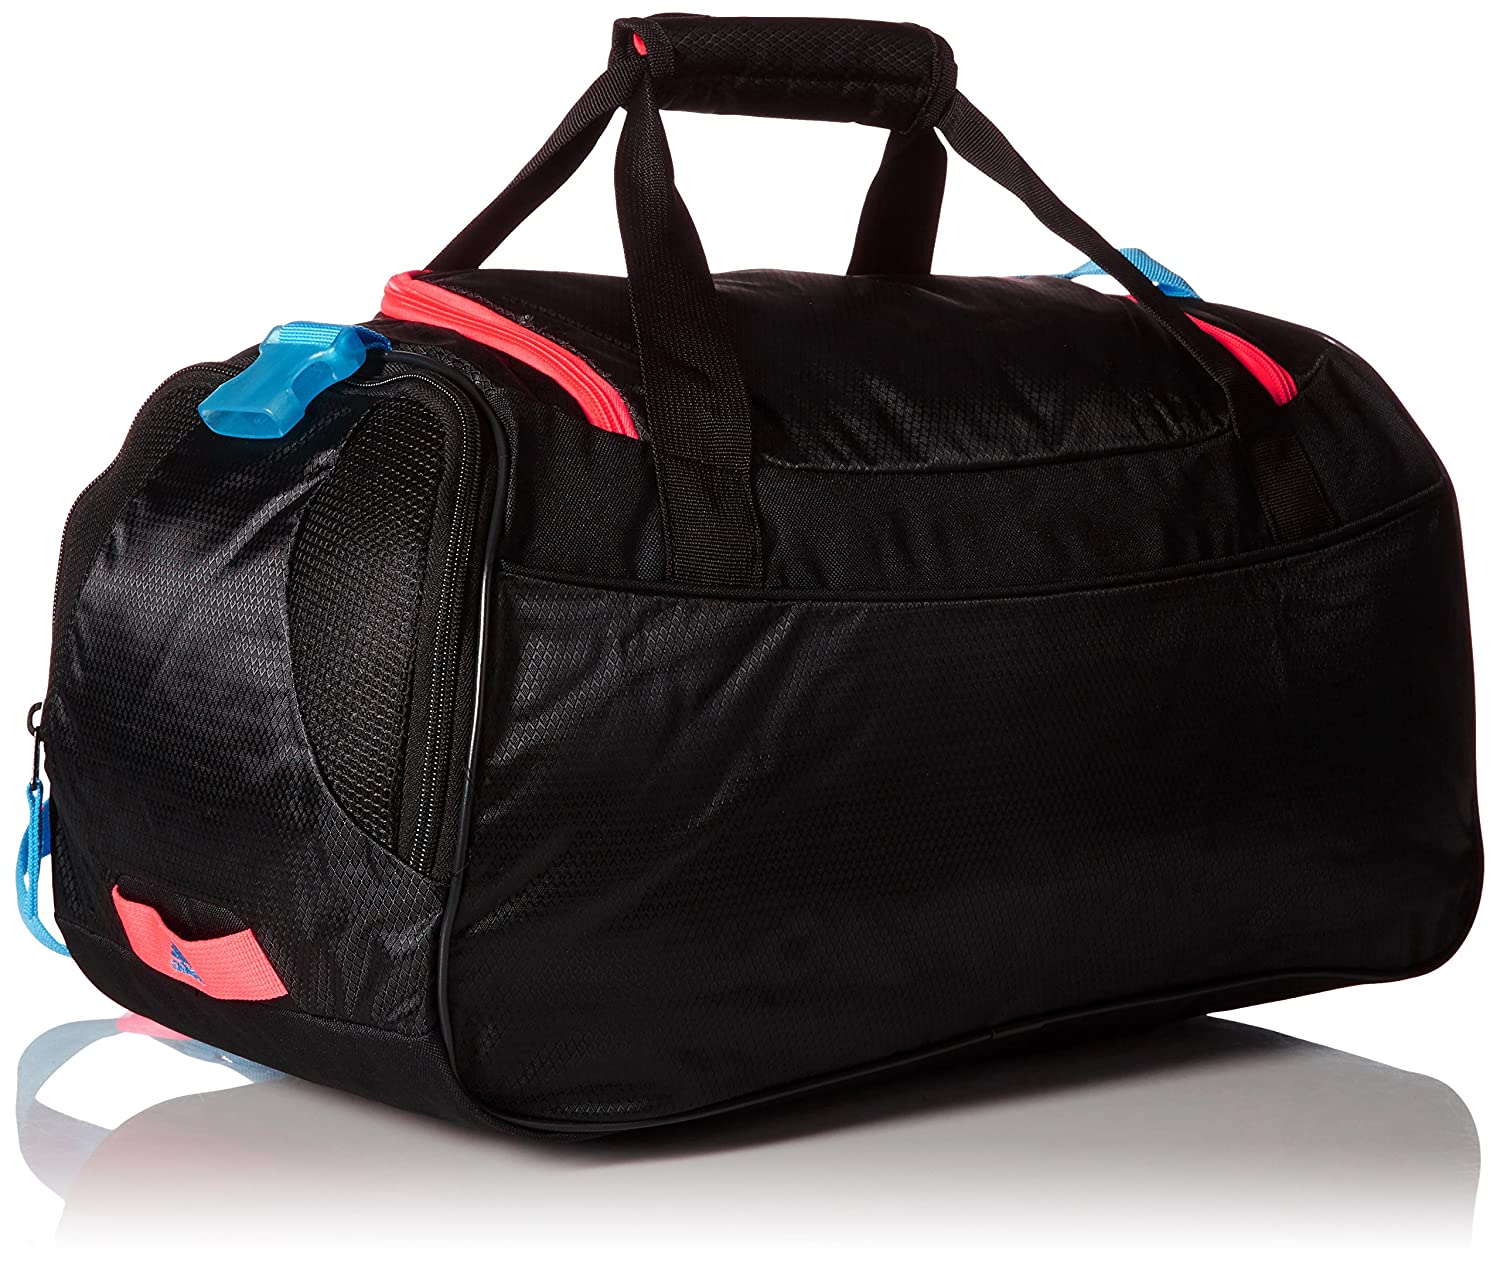 6c7b1c07a226 Amazon.com  Adidas Squad III Duffel Bag  Sports   Outdoors